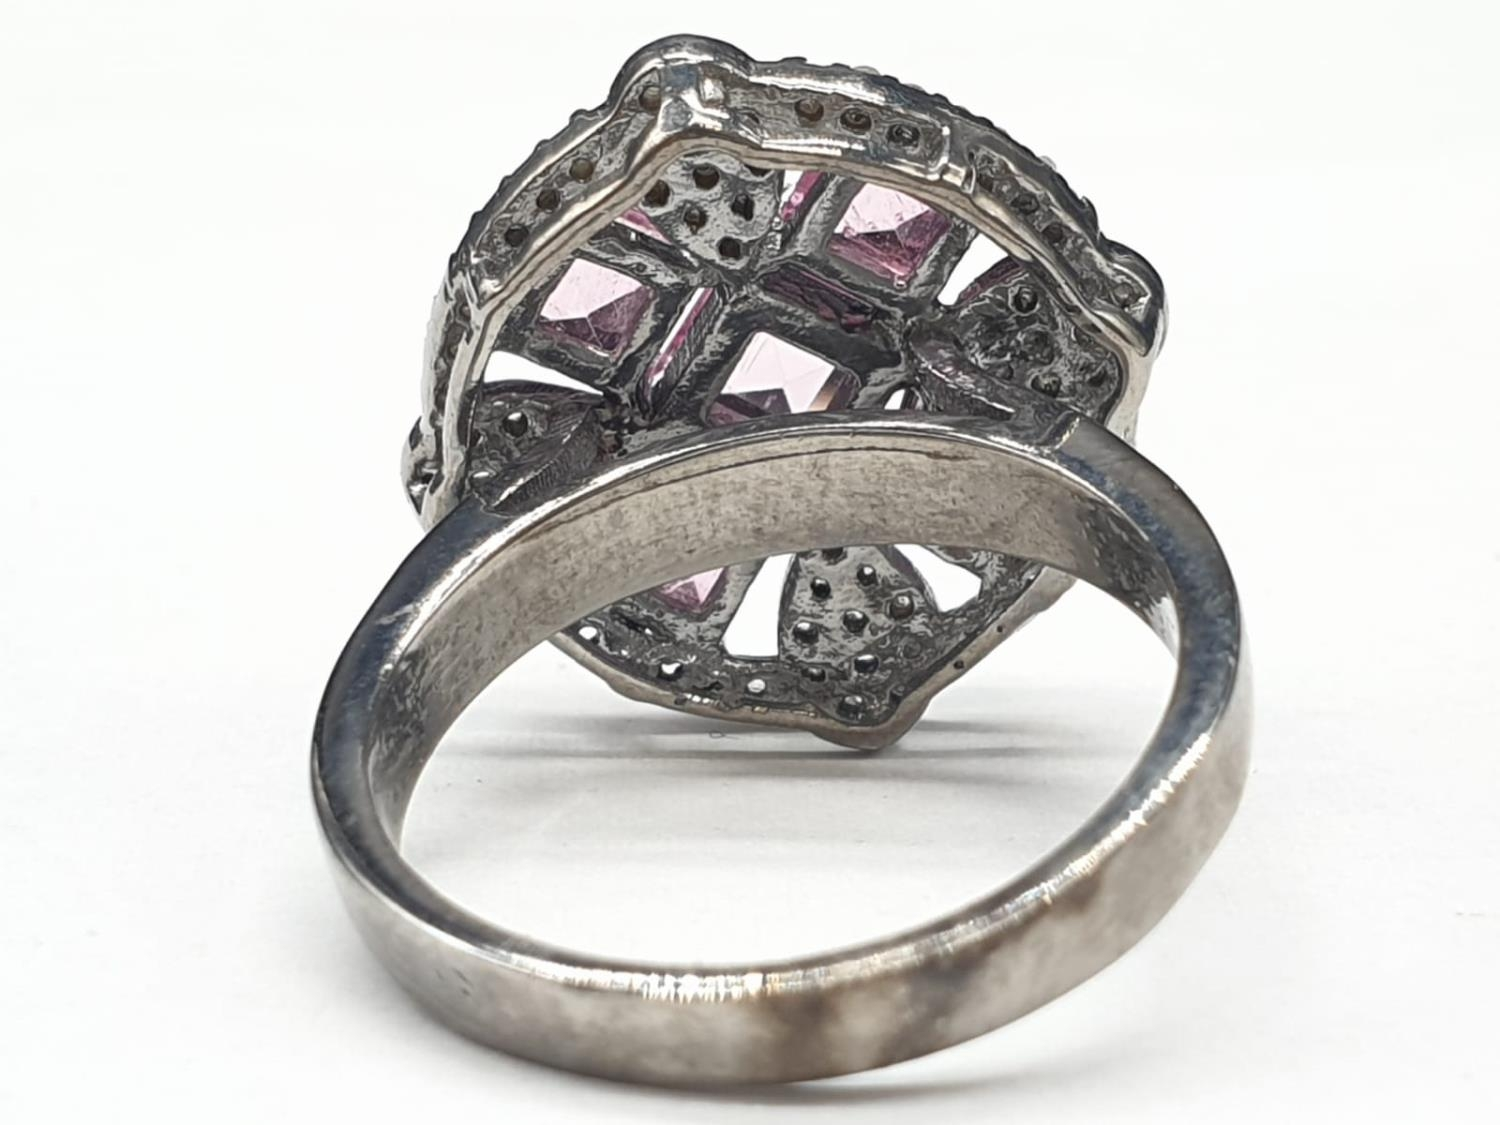 925 blackened silver ring. Consisting of 2.50 Ct Tourmaline & 0.50 Ct Rose cut diamonds, weight 6g - Image 4 of 6